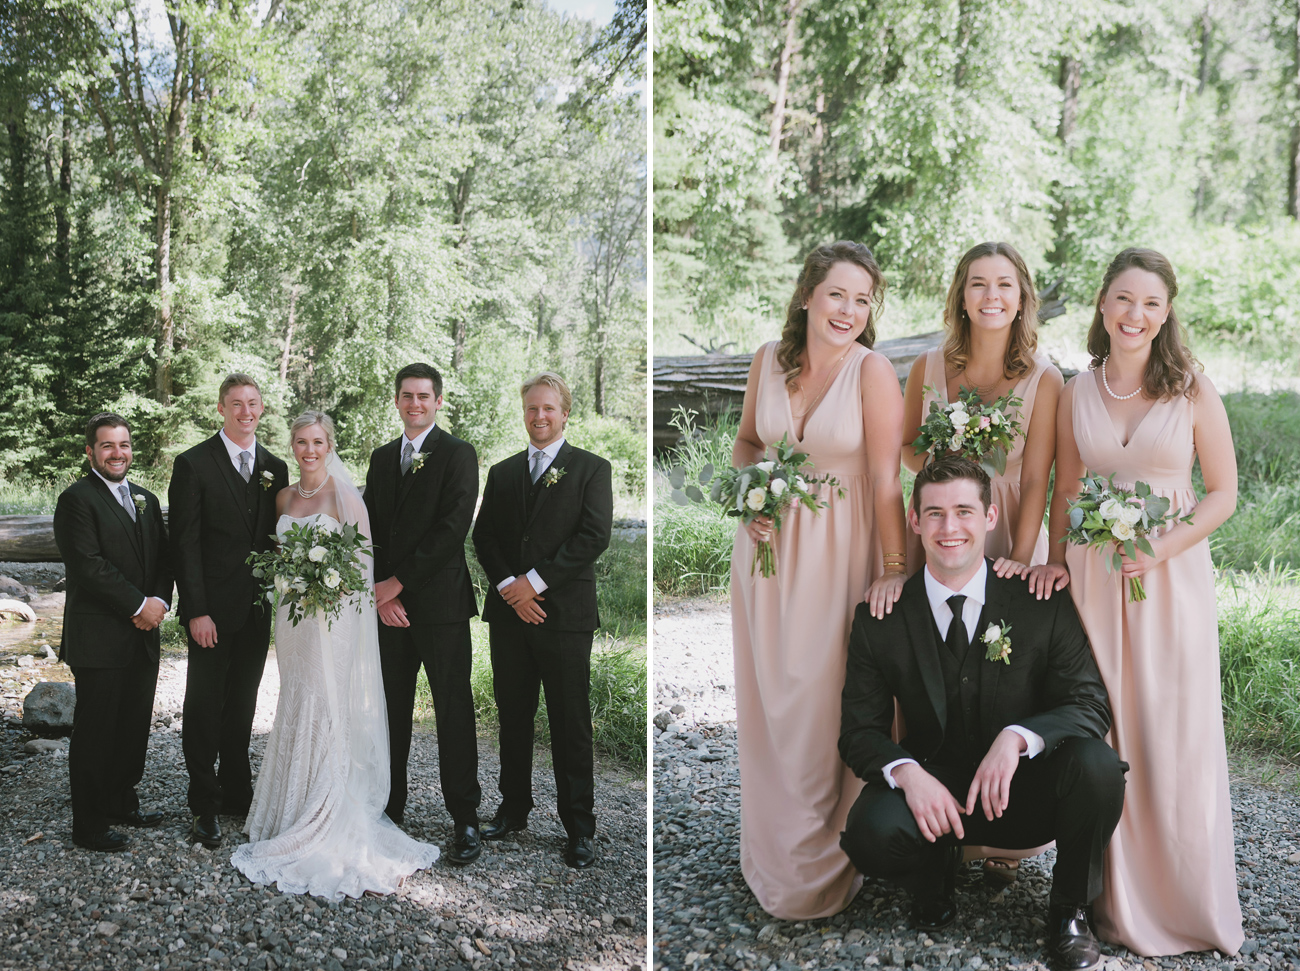 Eastern Oregon Lake Wallowa Wedding Photography by Ali Walker Walla Walla Wedding Photographer 044.JPG